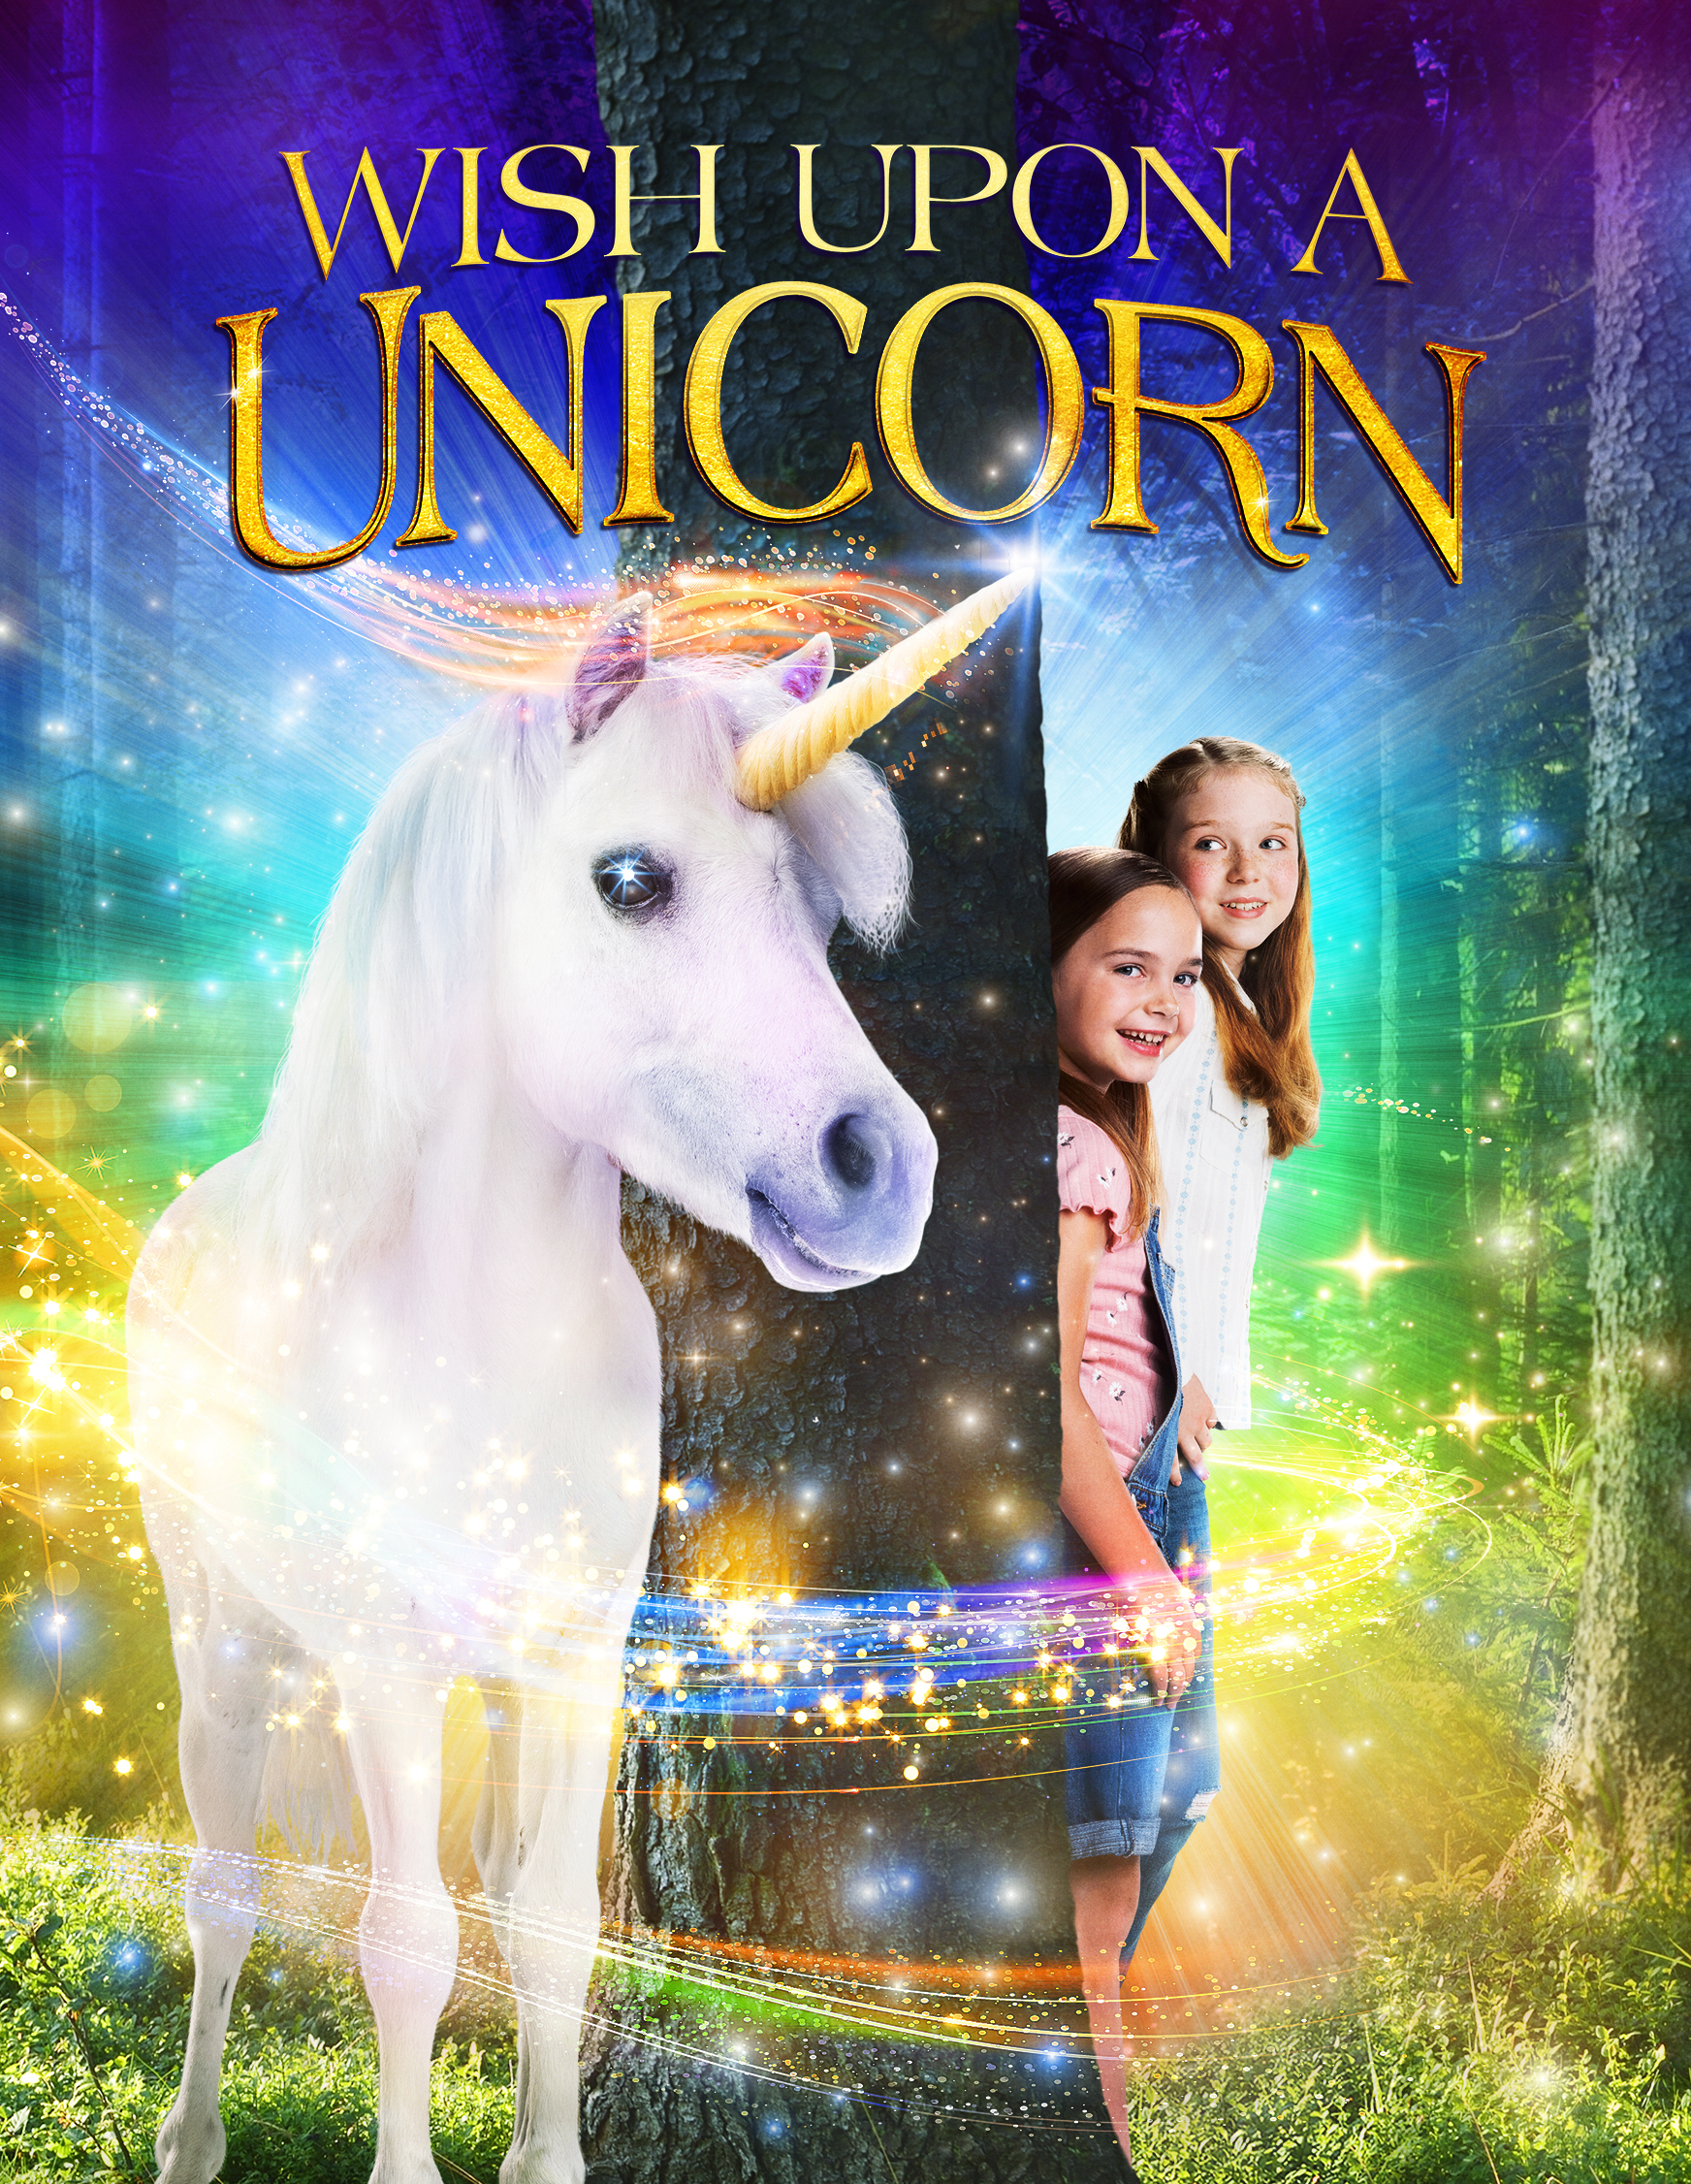 Wish Upon a Unicorn hd on soap2day